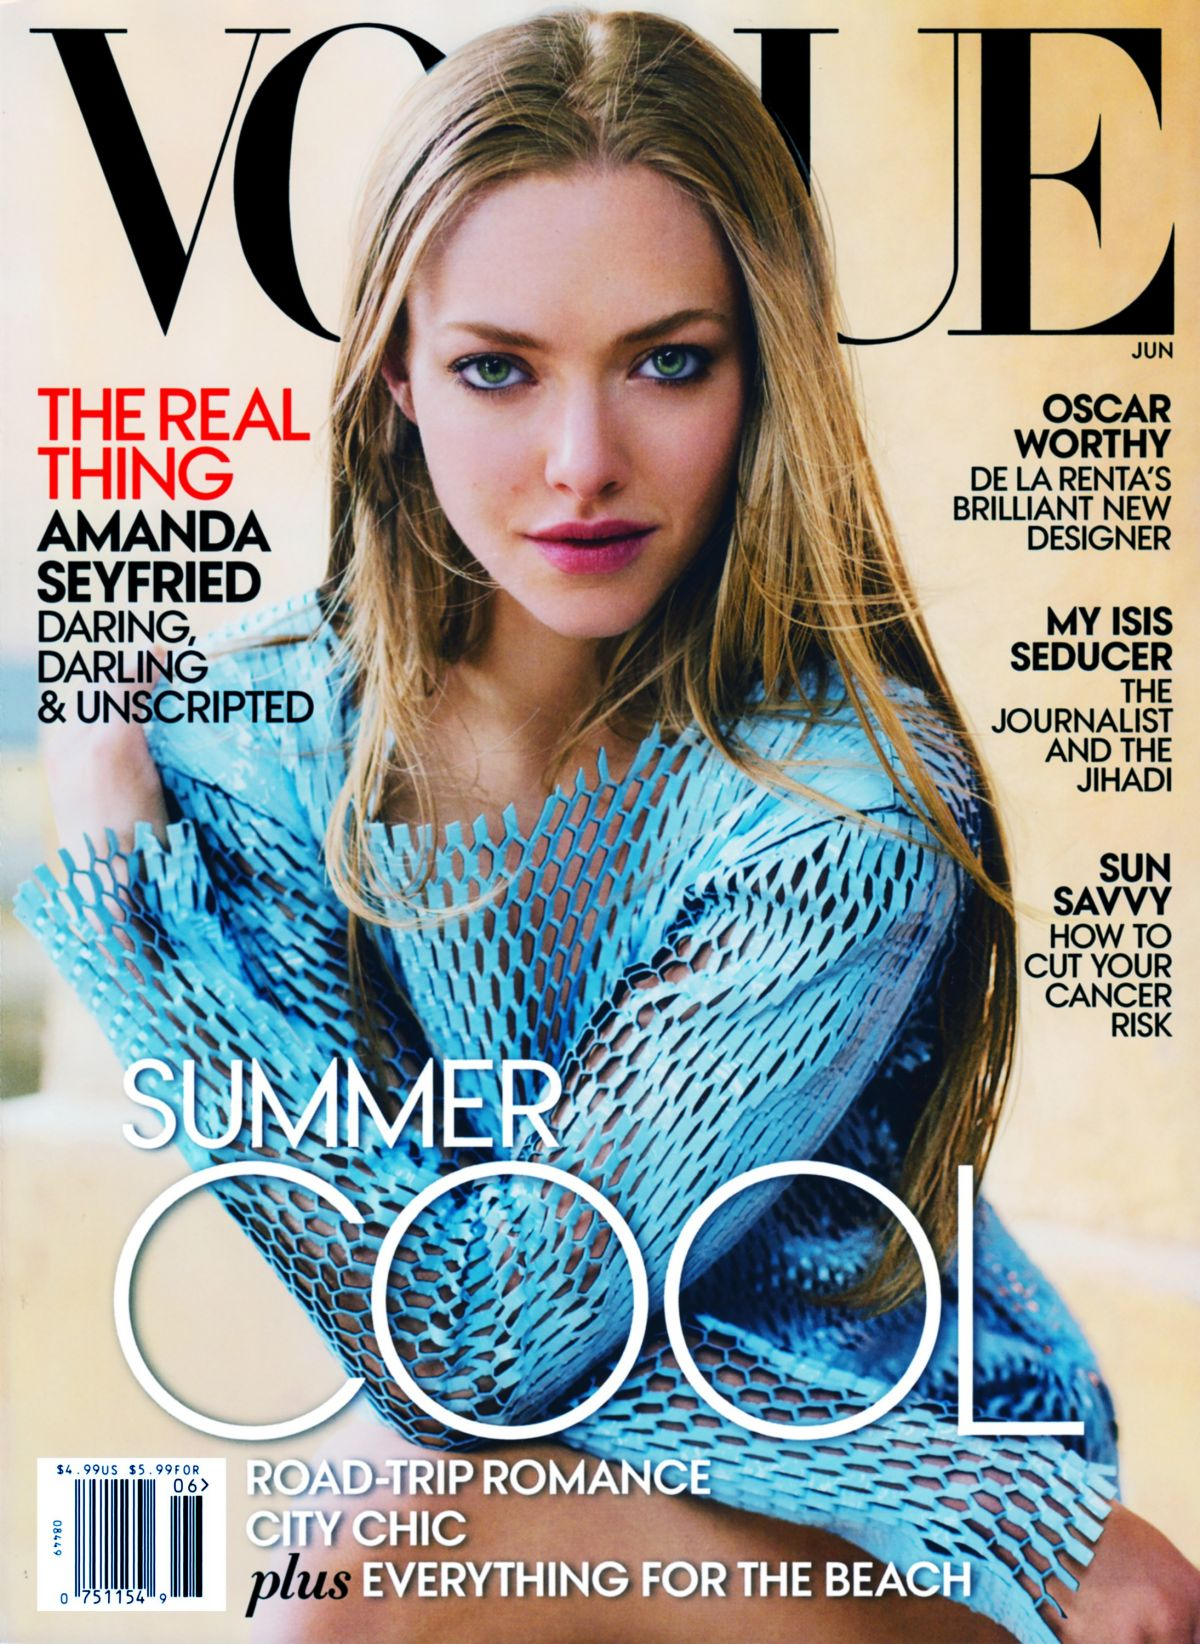 AMANDA SEYFRIED in Vogue Magazine, June 2015 Issue